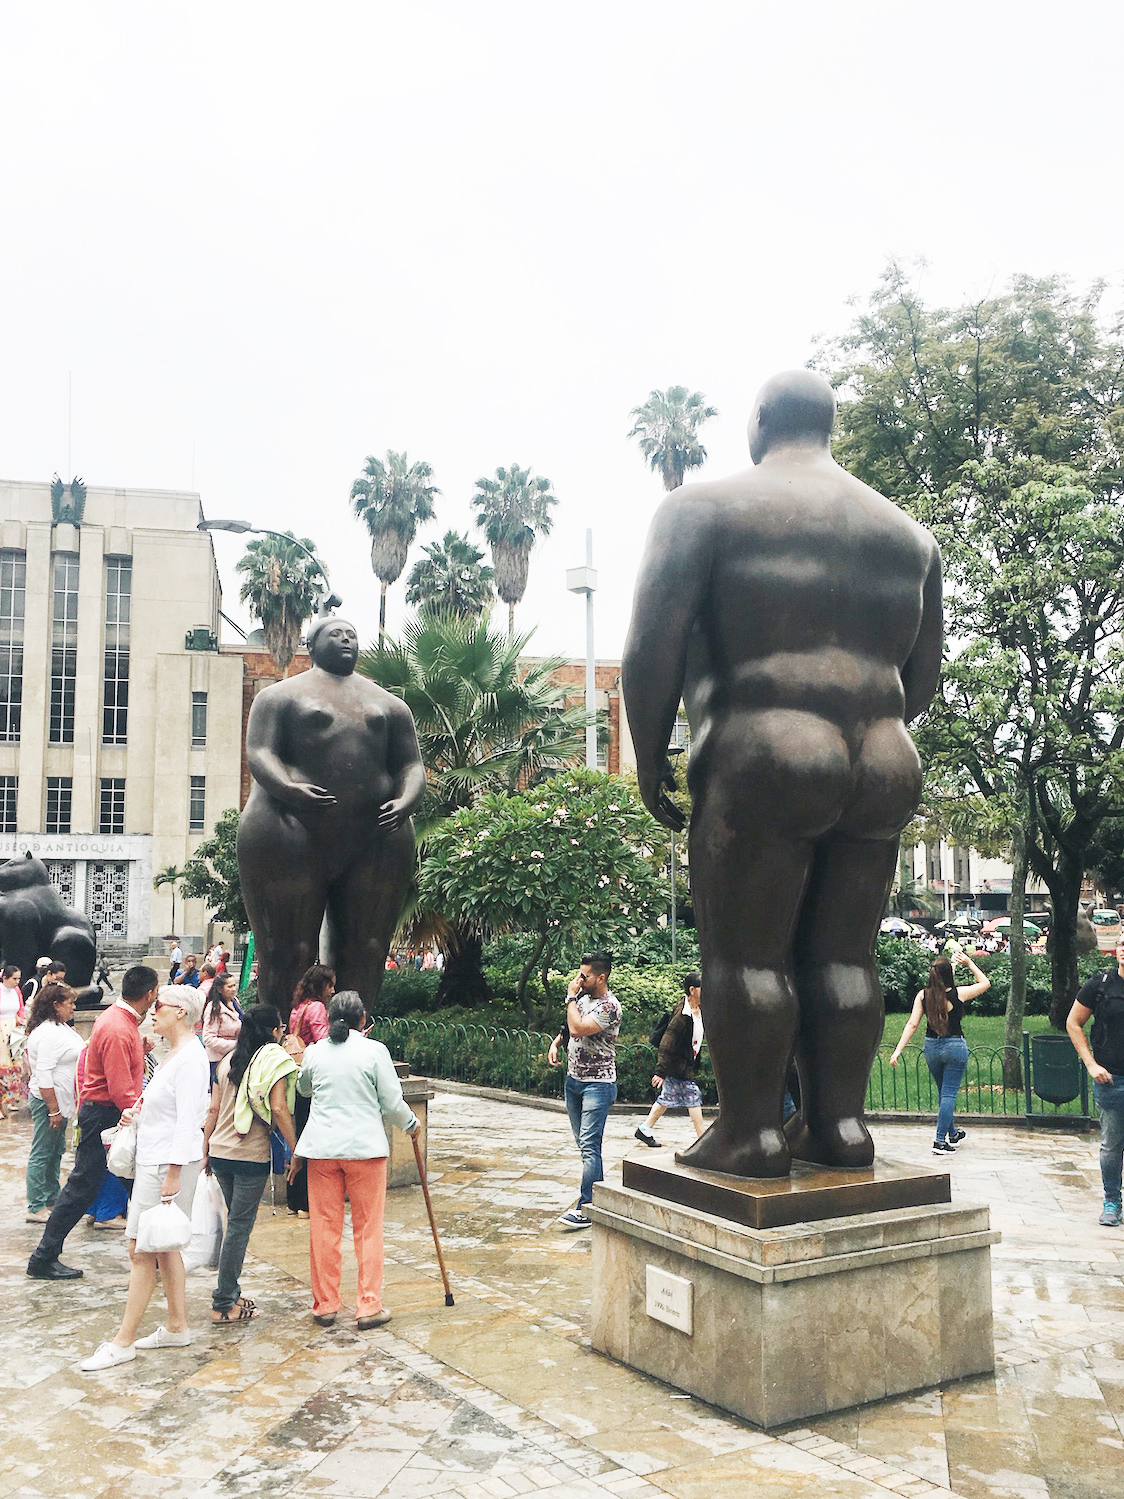 Fernando Botero is one of Colombia's most famous artists, known for his roundly-figured sculptures and paintings. He donated over 100 of pieces of work to his hometown of Medellín, on display in this public square and in the Museum of Antioquia (seen in background on left).